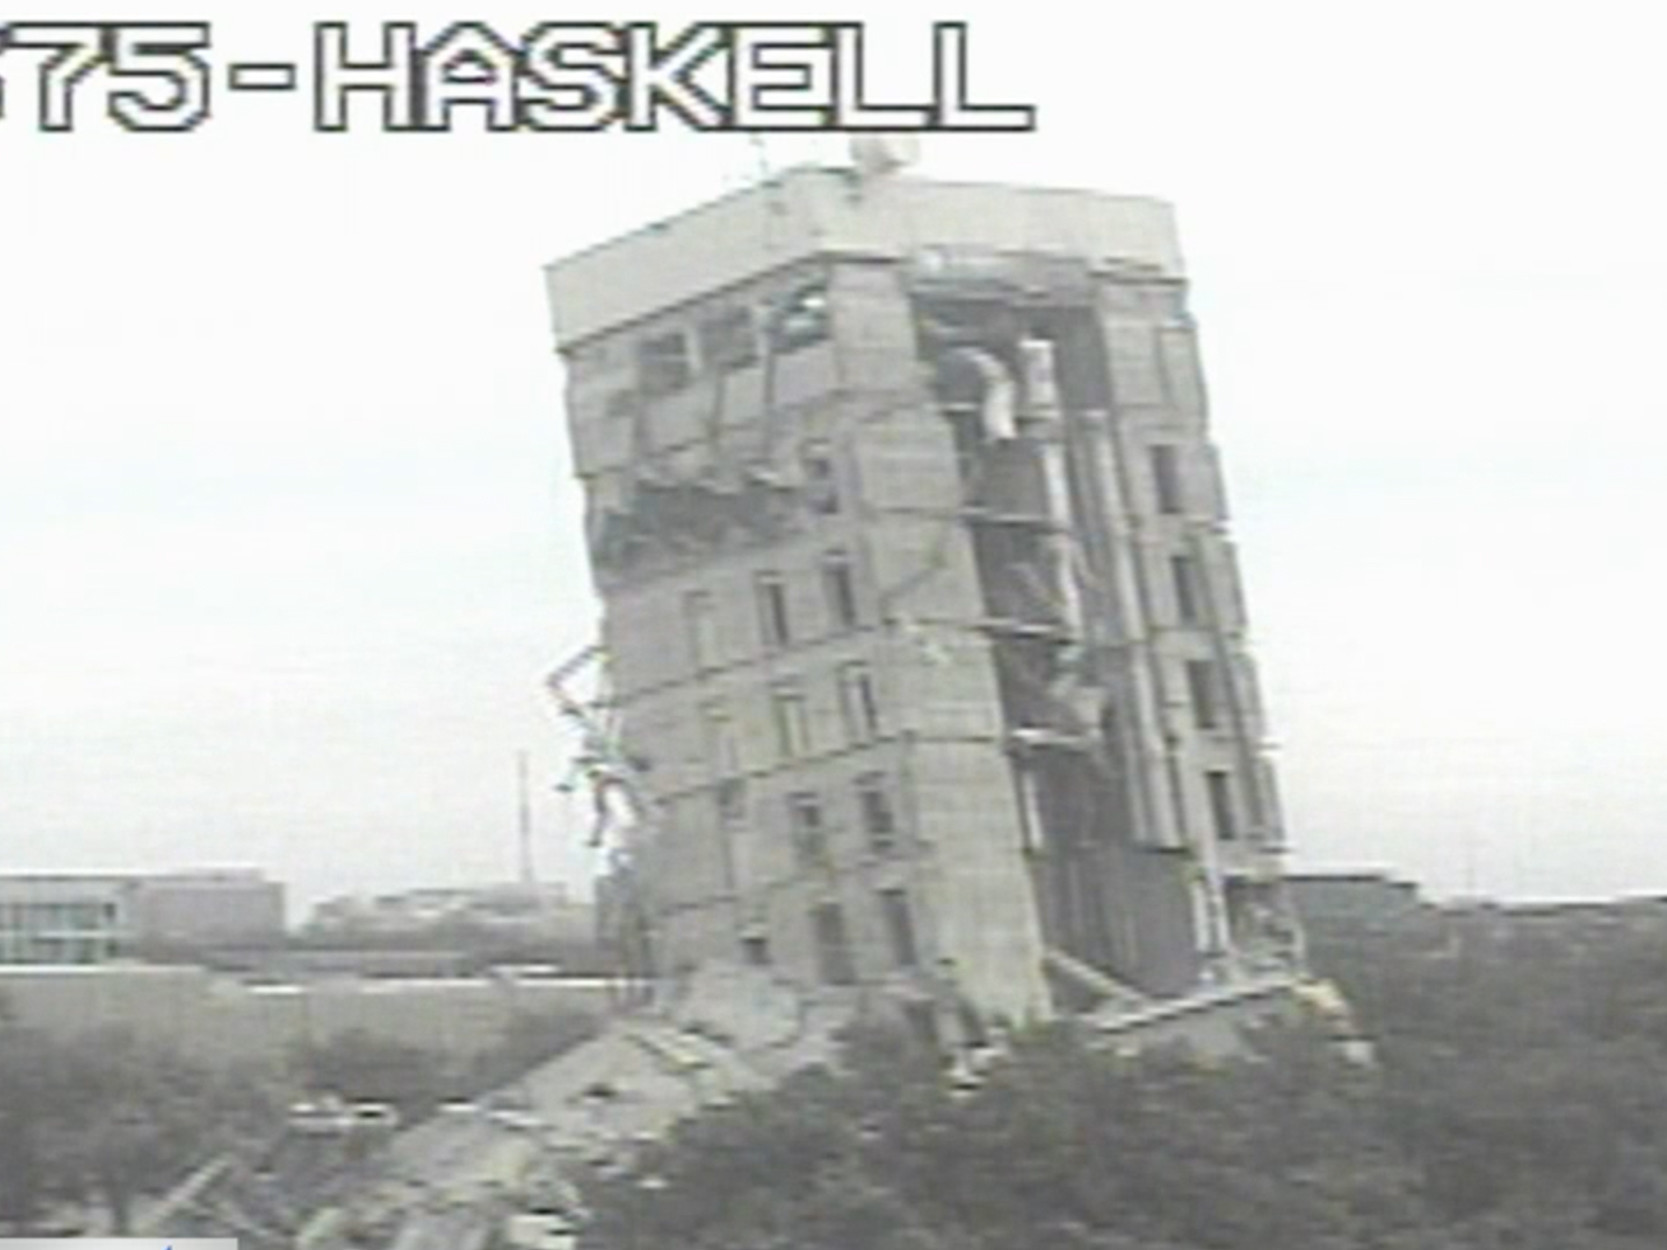 'Leaning Tower of Dallas' goes viral after failed demolition of building